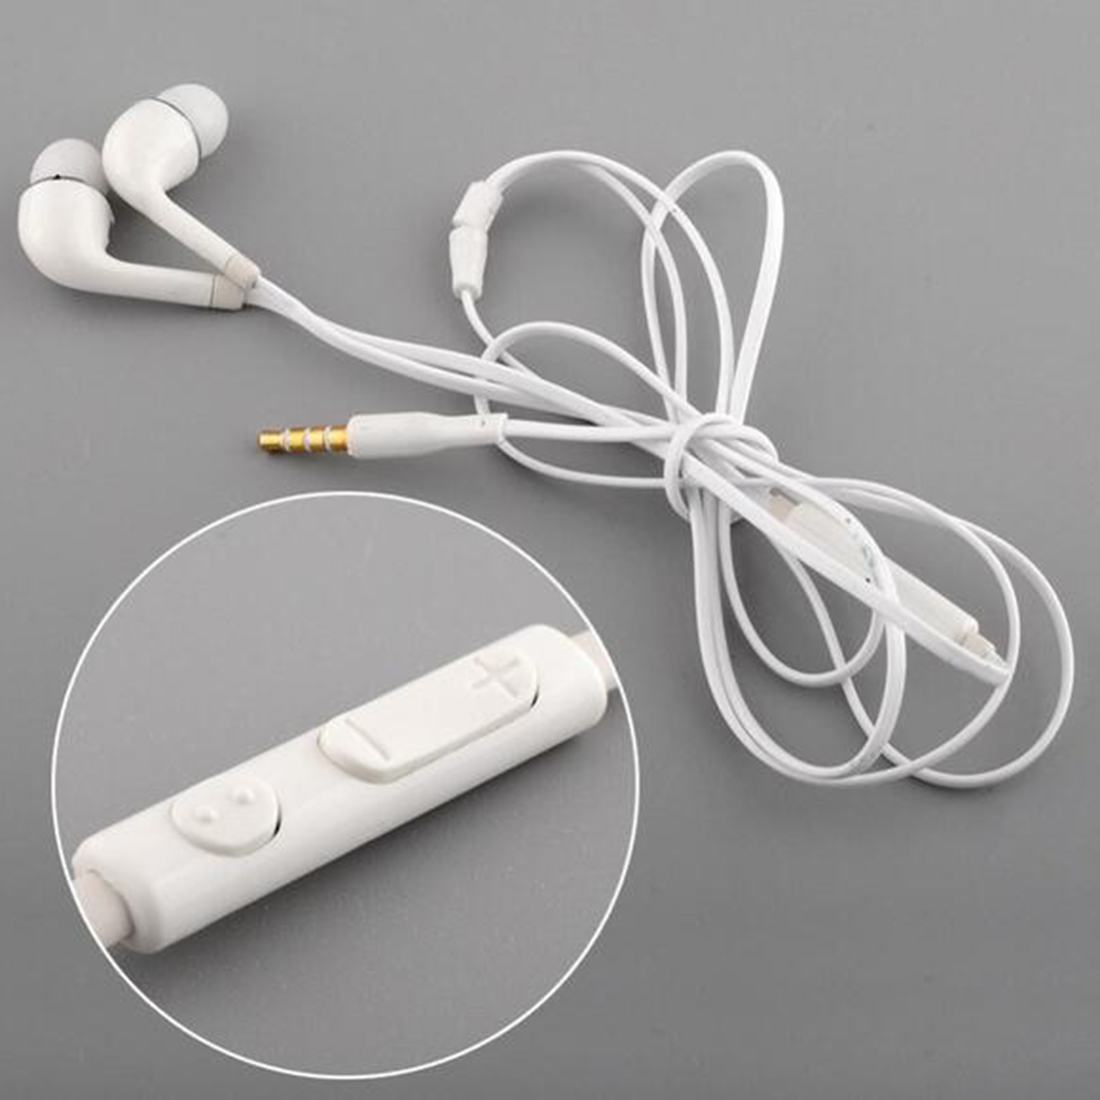 Marsnaska In-Ear Earphone With Mic Wired Control In Ear Earphone Phone Earphones For Samsung Galaxy S4 S3 S2 S5 s6 s7 Note 2 new 3 5mm in ear wired earphone